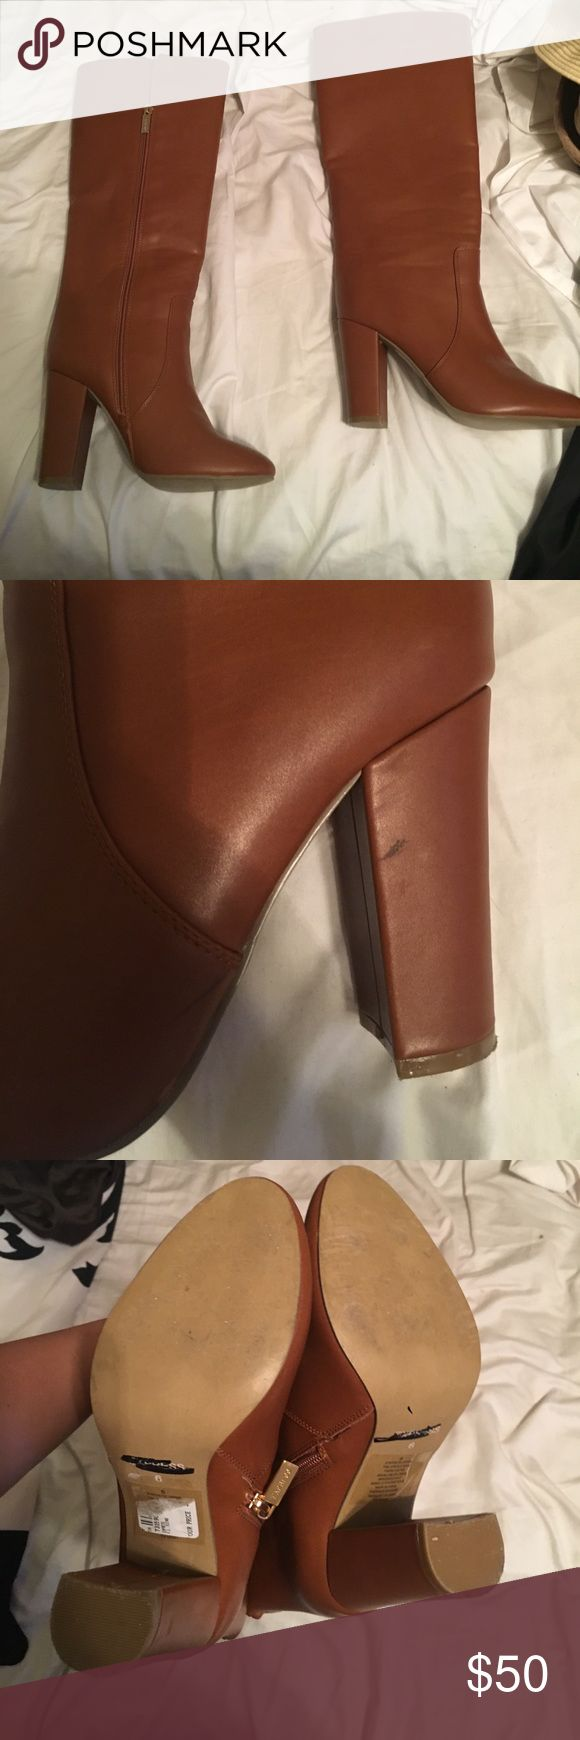 Tall cognac boots Only worn once. Too tall for my short lets. Cognac brown color. Purchased from express!! Size 6. True to size Express Shoes Winter & Rain Boots